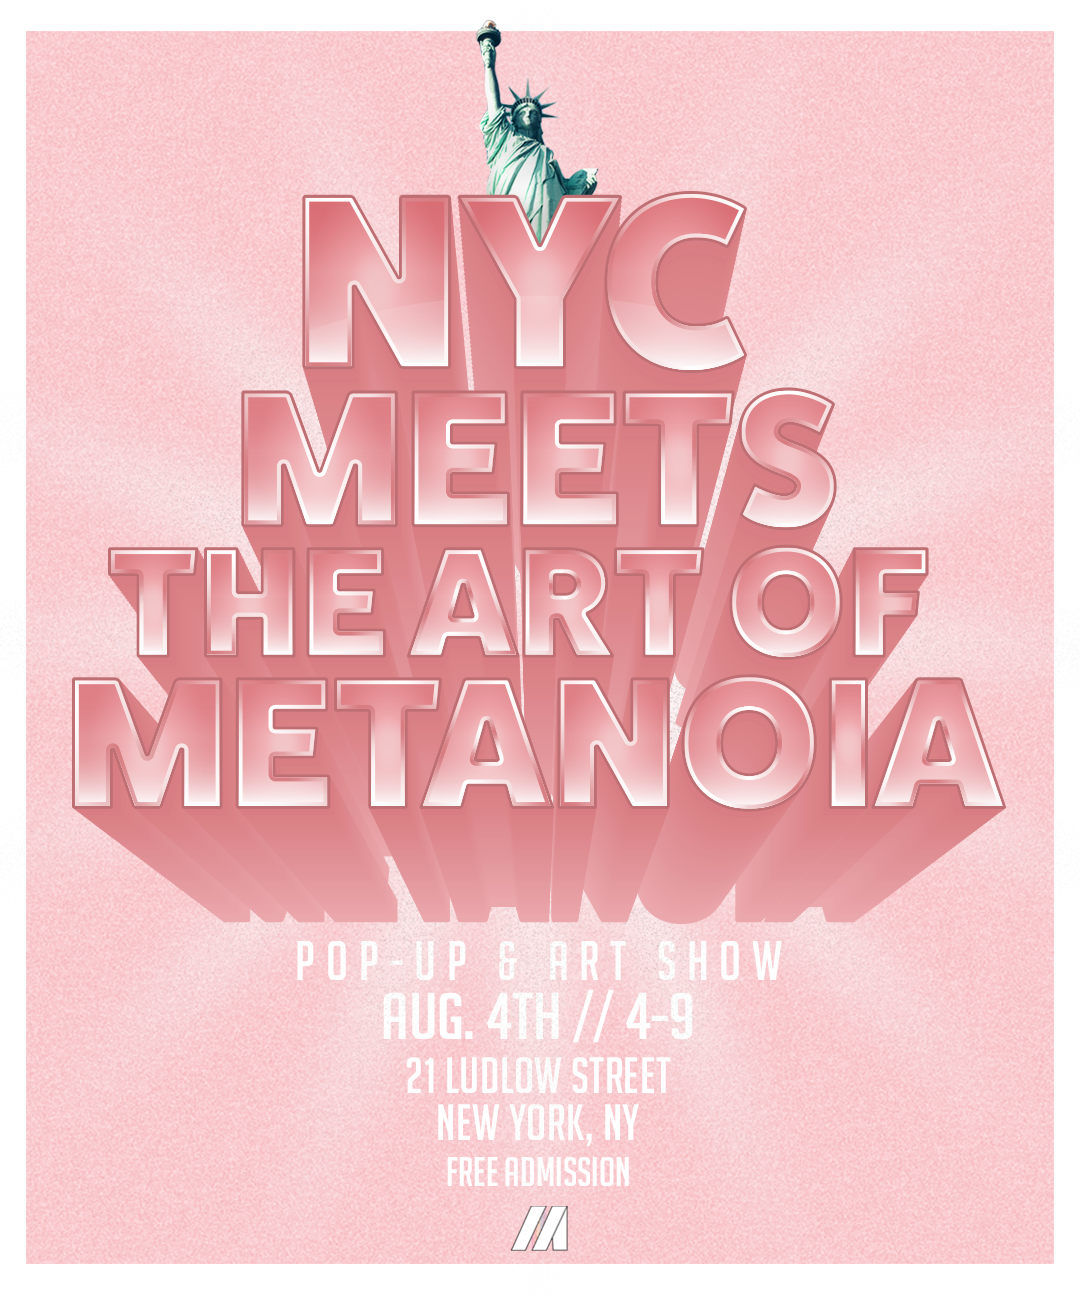 NYC MEETS THE ART OF METANOIA2.png